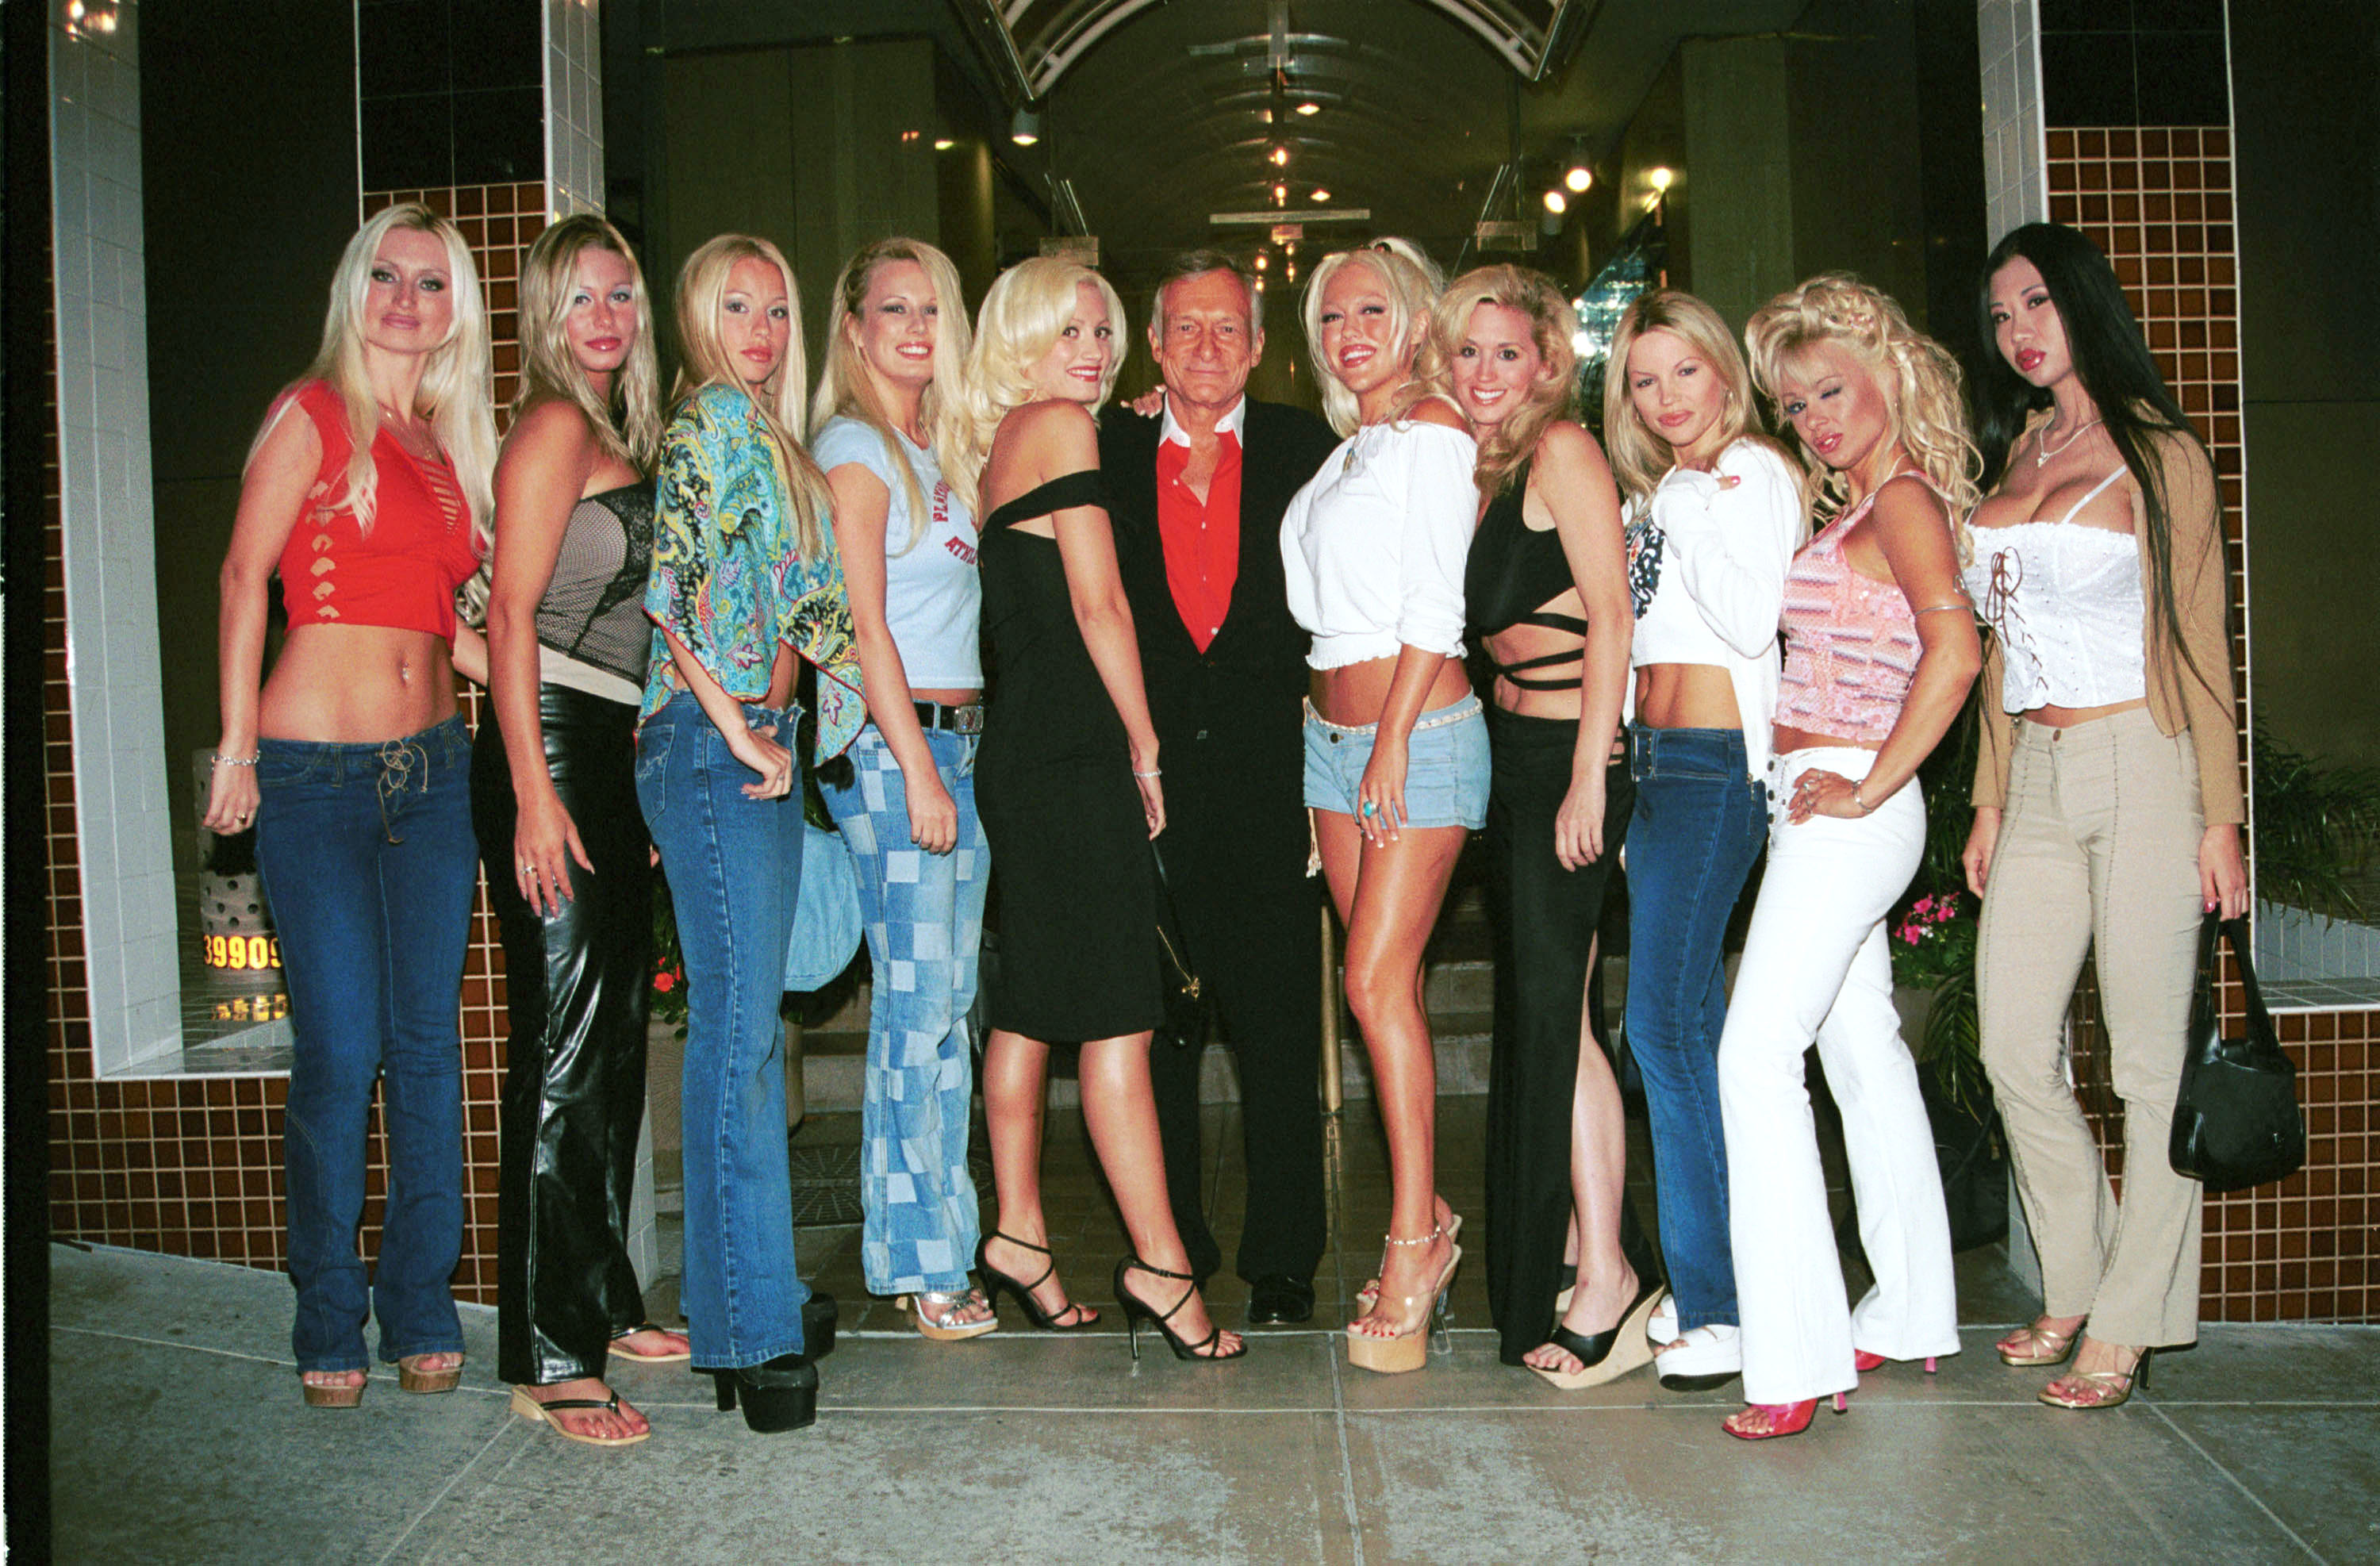 Hugh Hefner facts